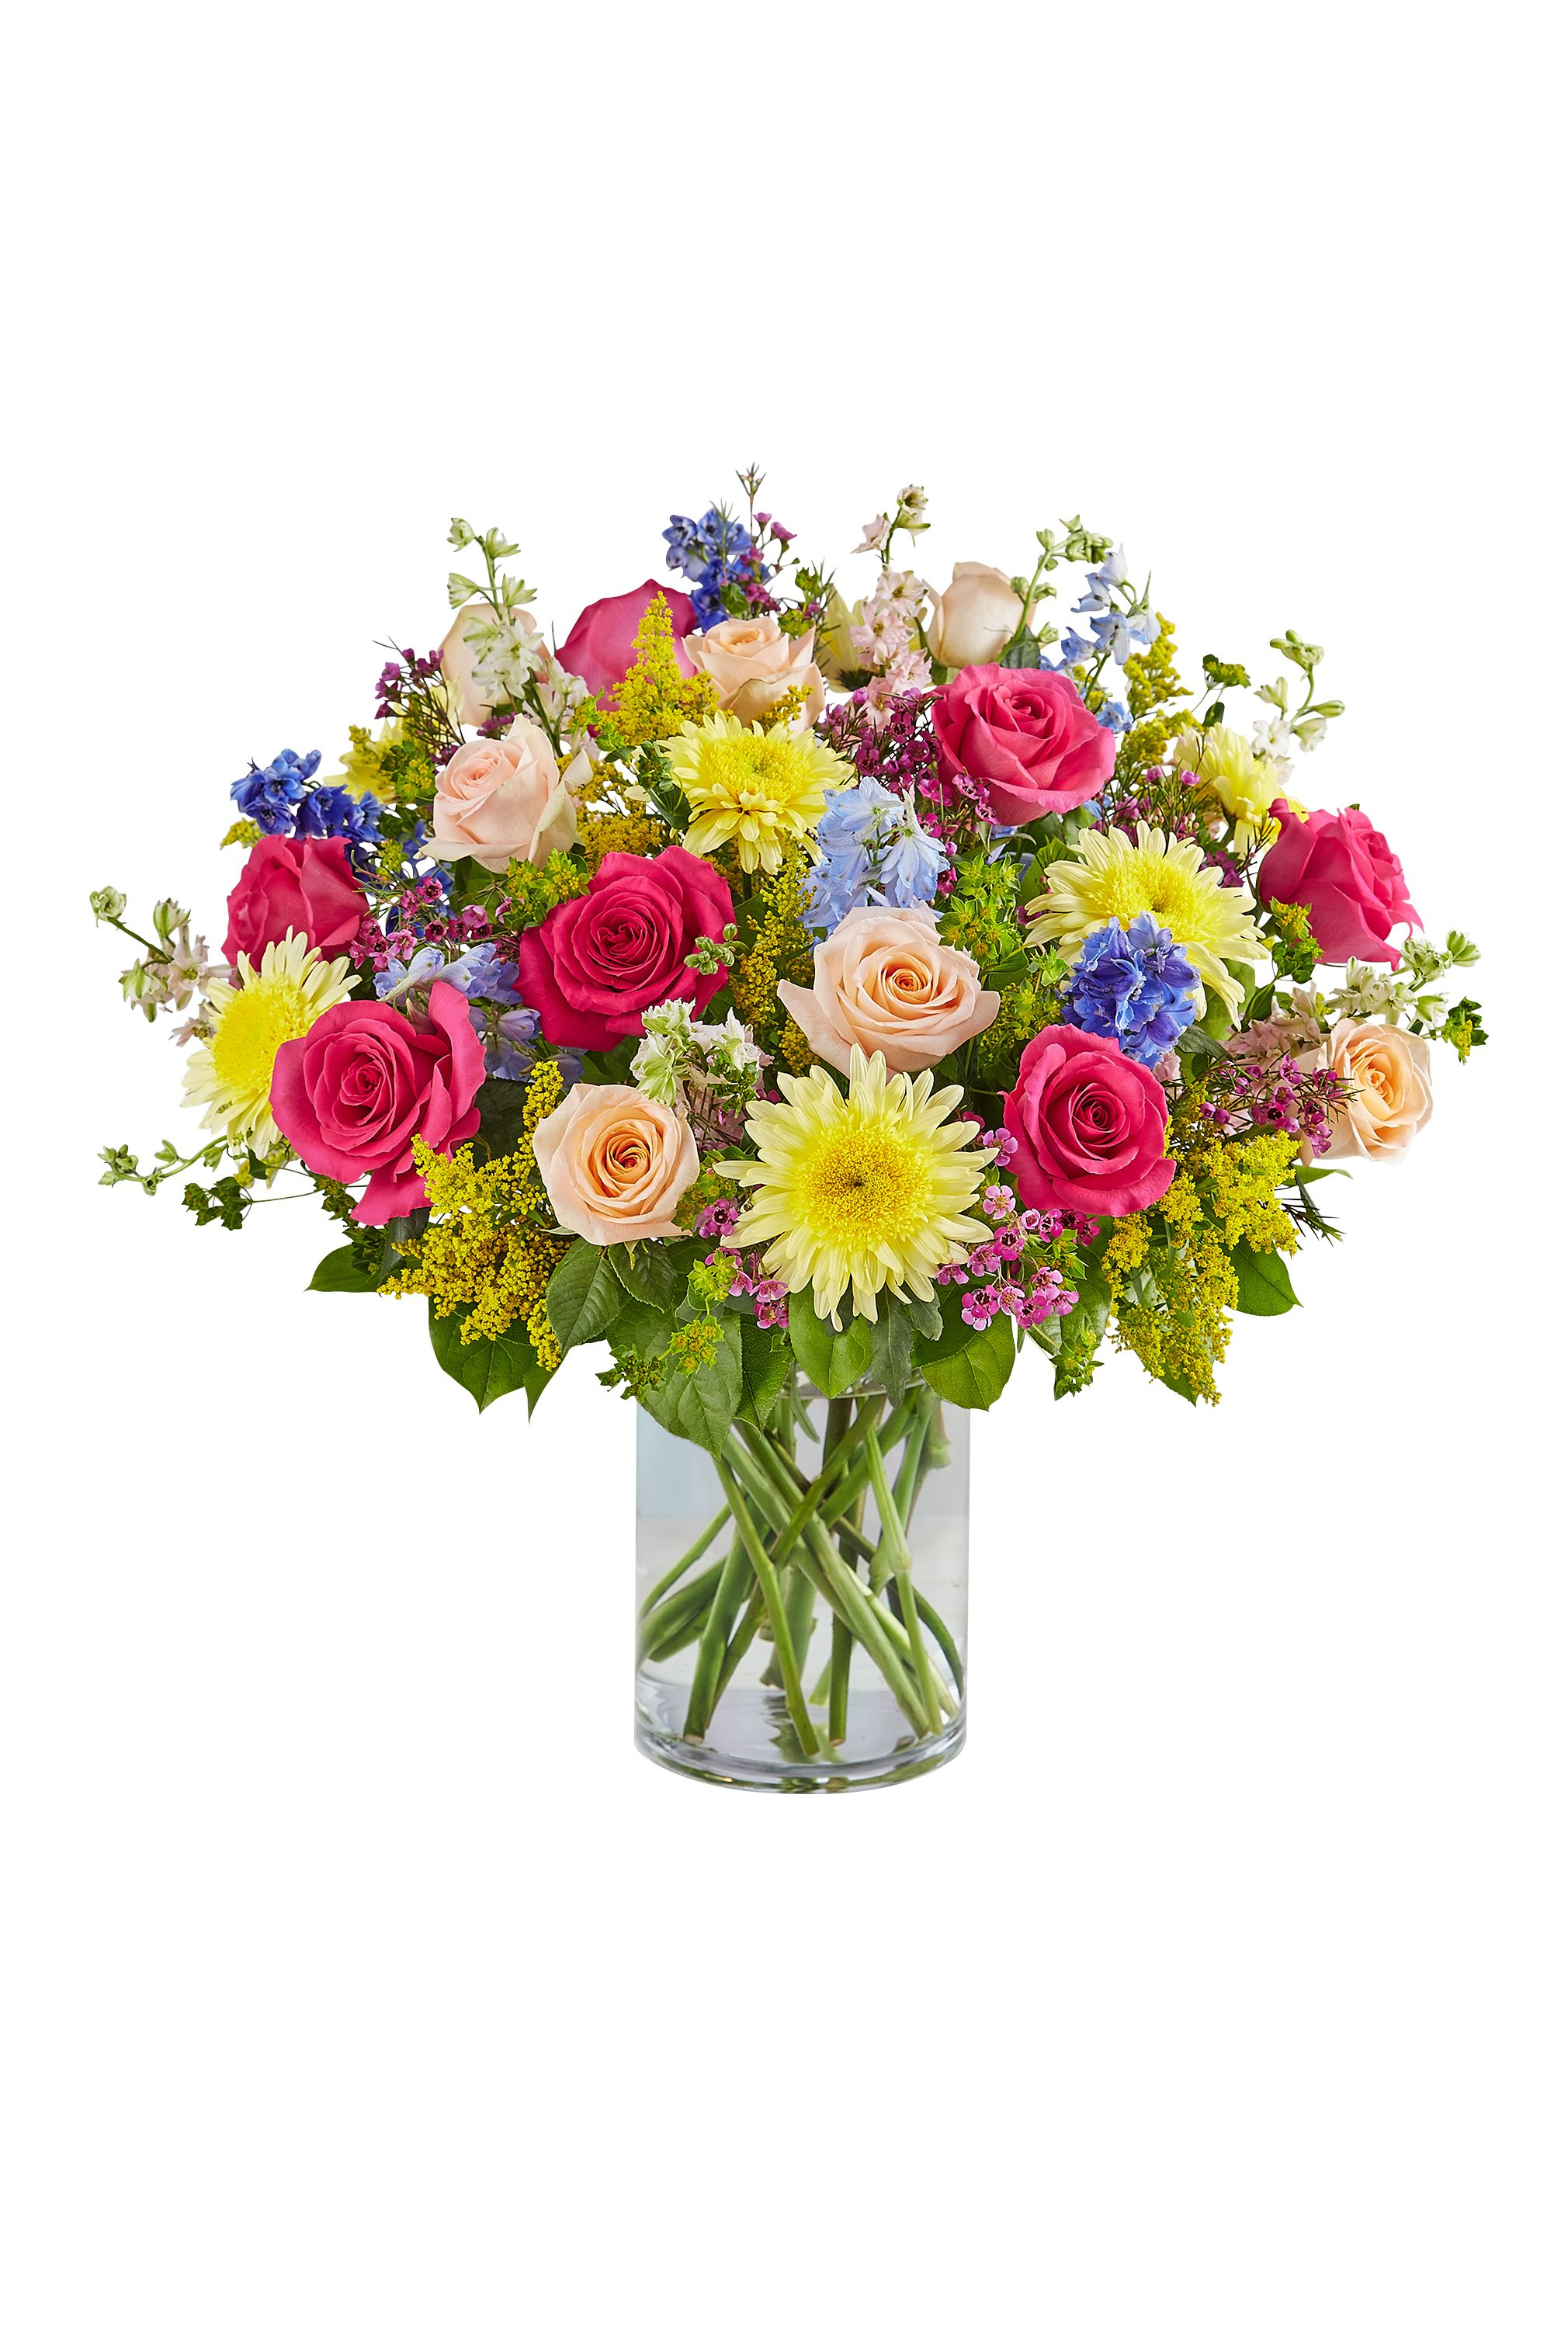 20 mothers day flower ideas mothers day bouquets izmirmasajfo